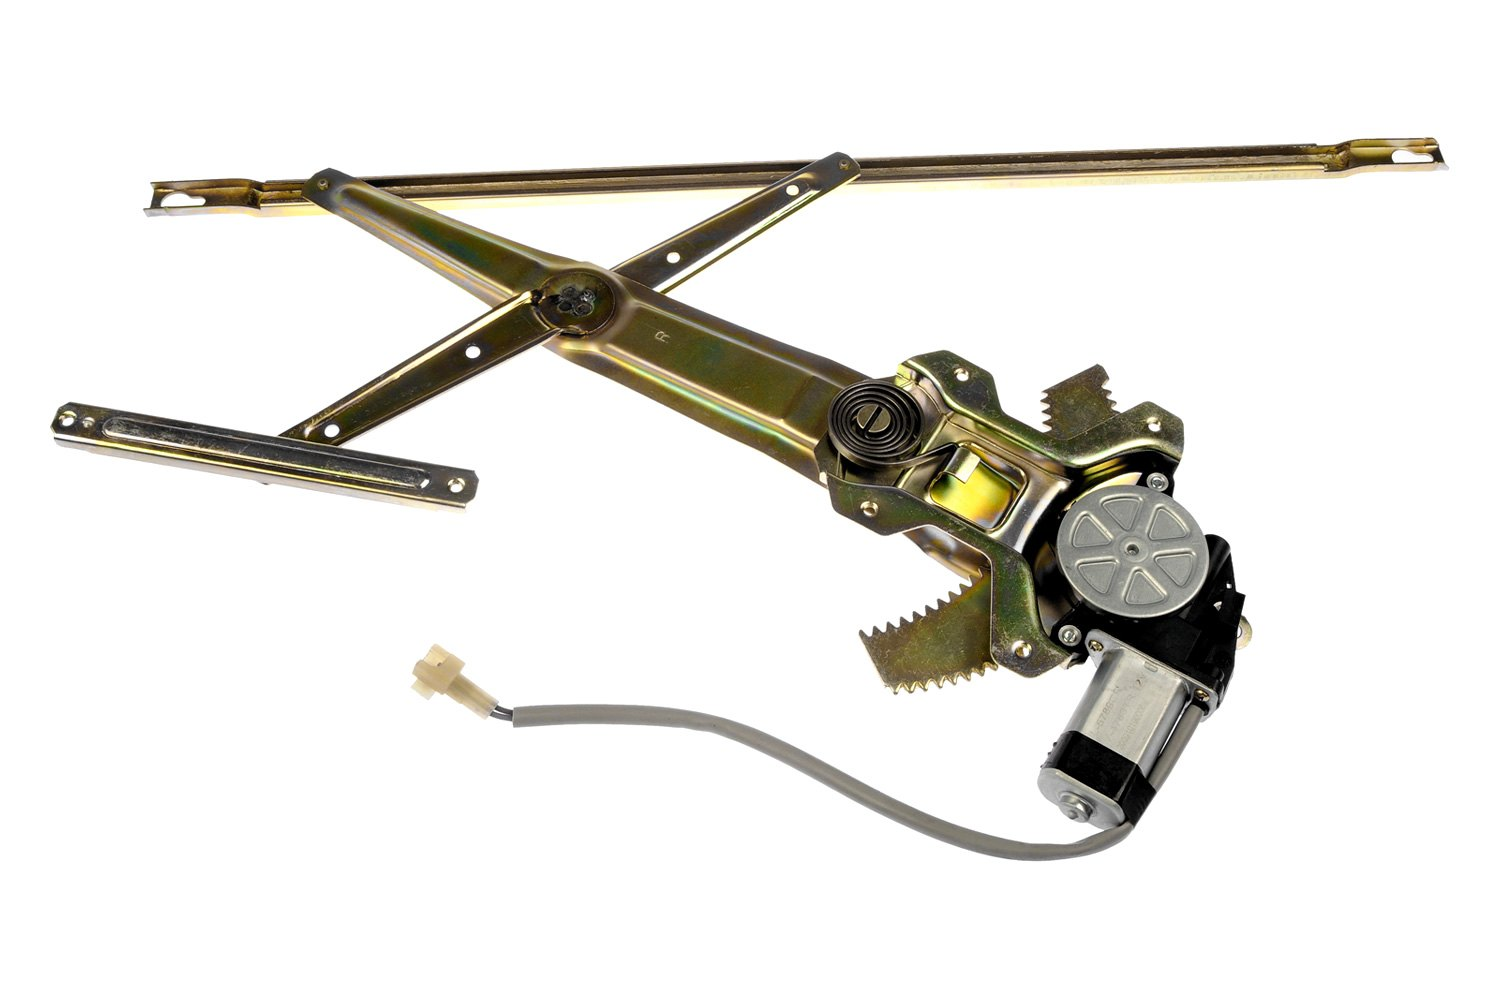 Dorman 741 016 honda accord 1987 power window regulator for 2002 honda accord power window problems